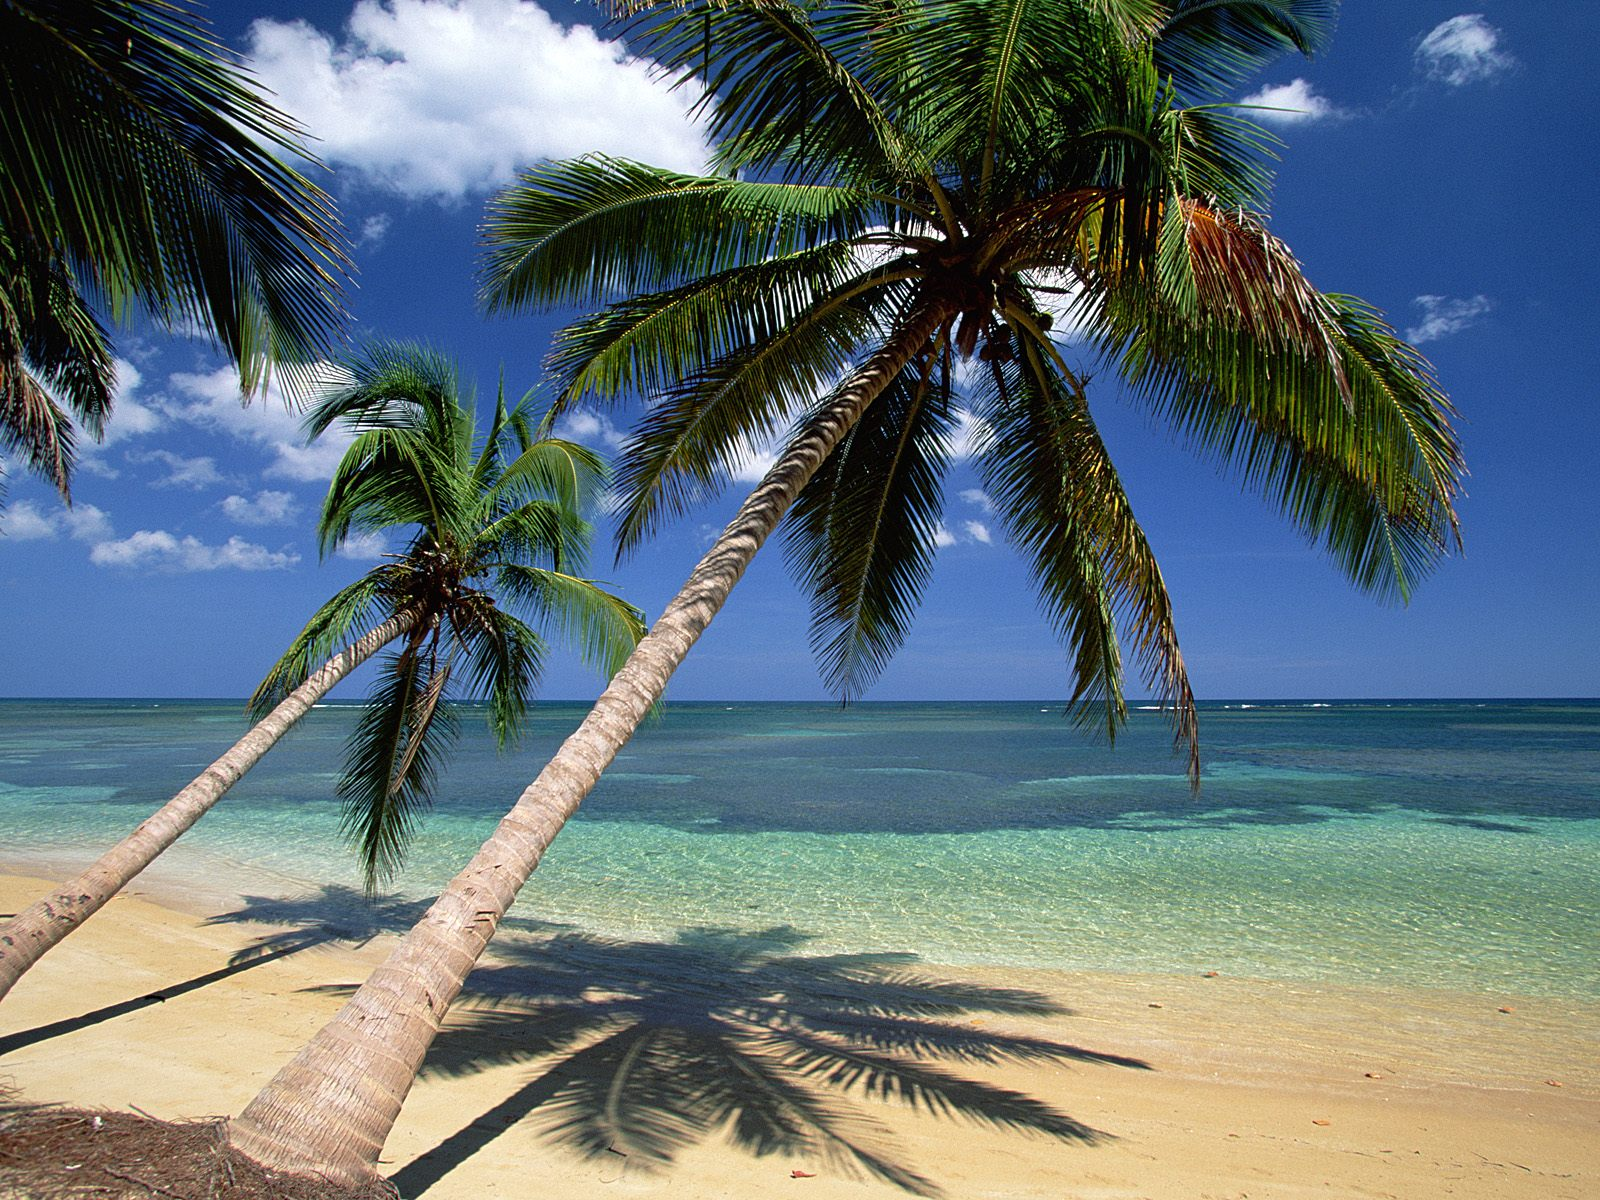 chainimage-coconut-palm-tree-pictures-facts-on-coconut-palm-trees.jpg